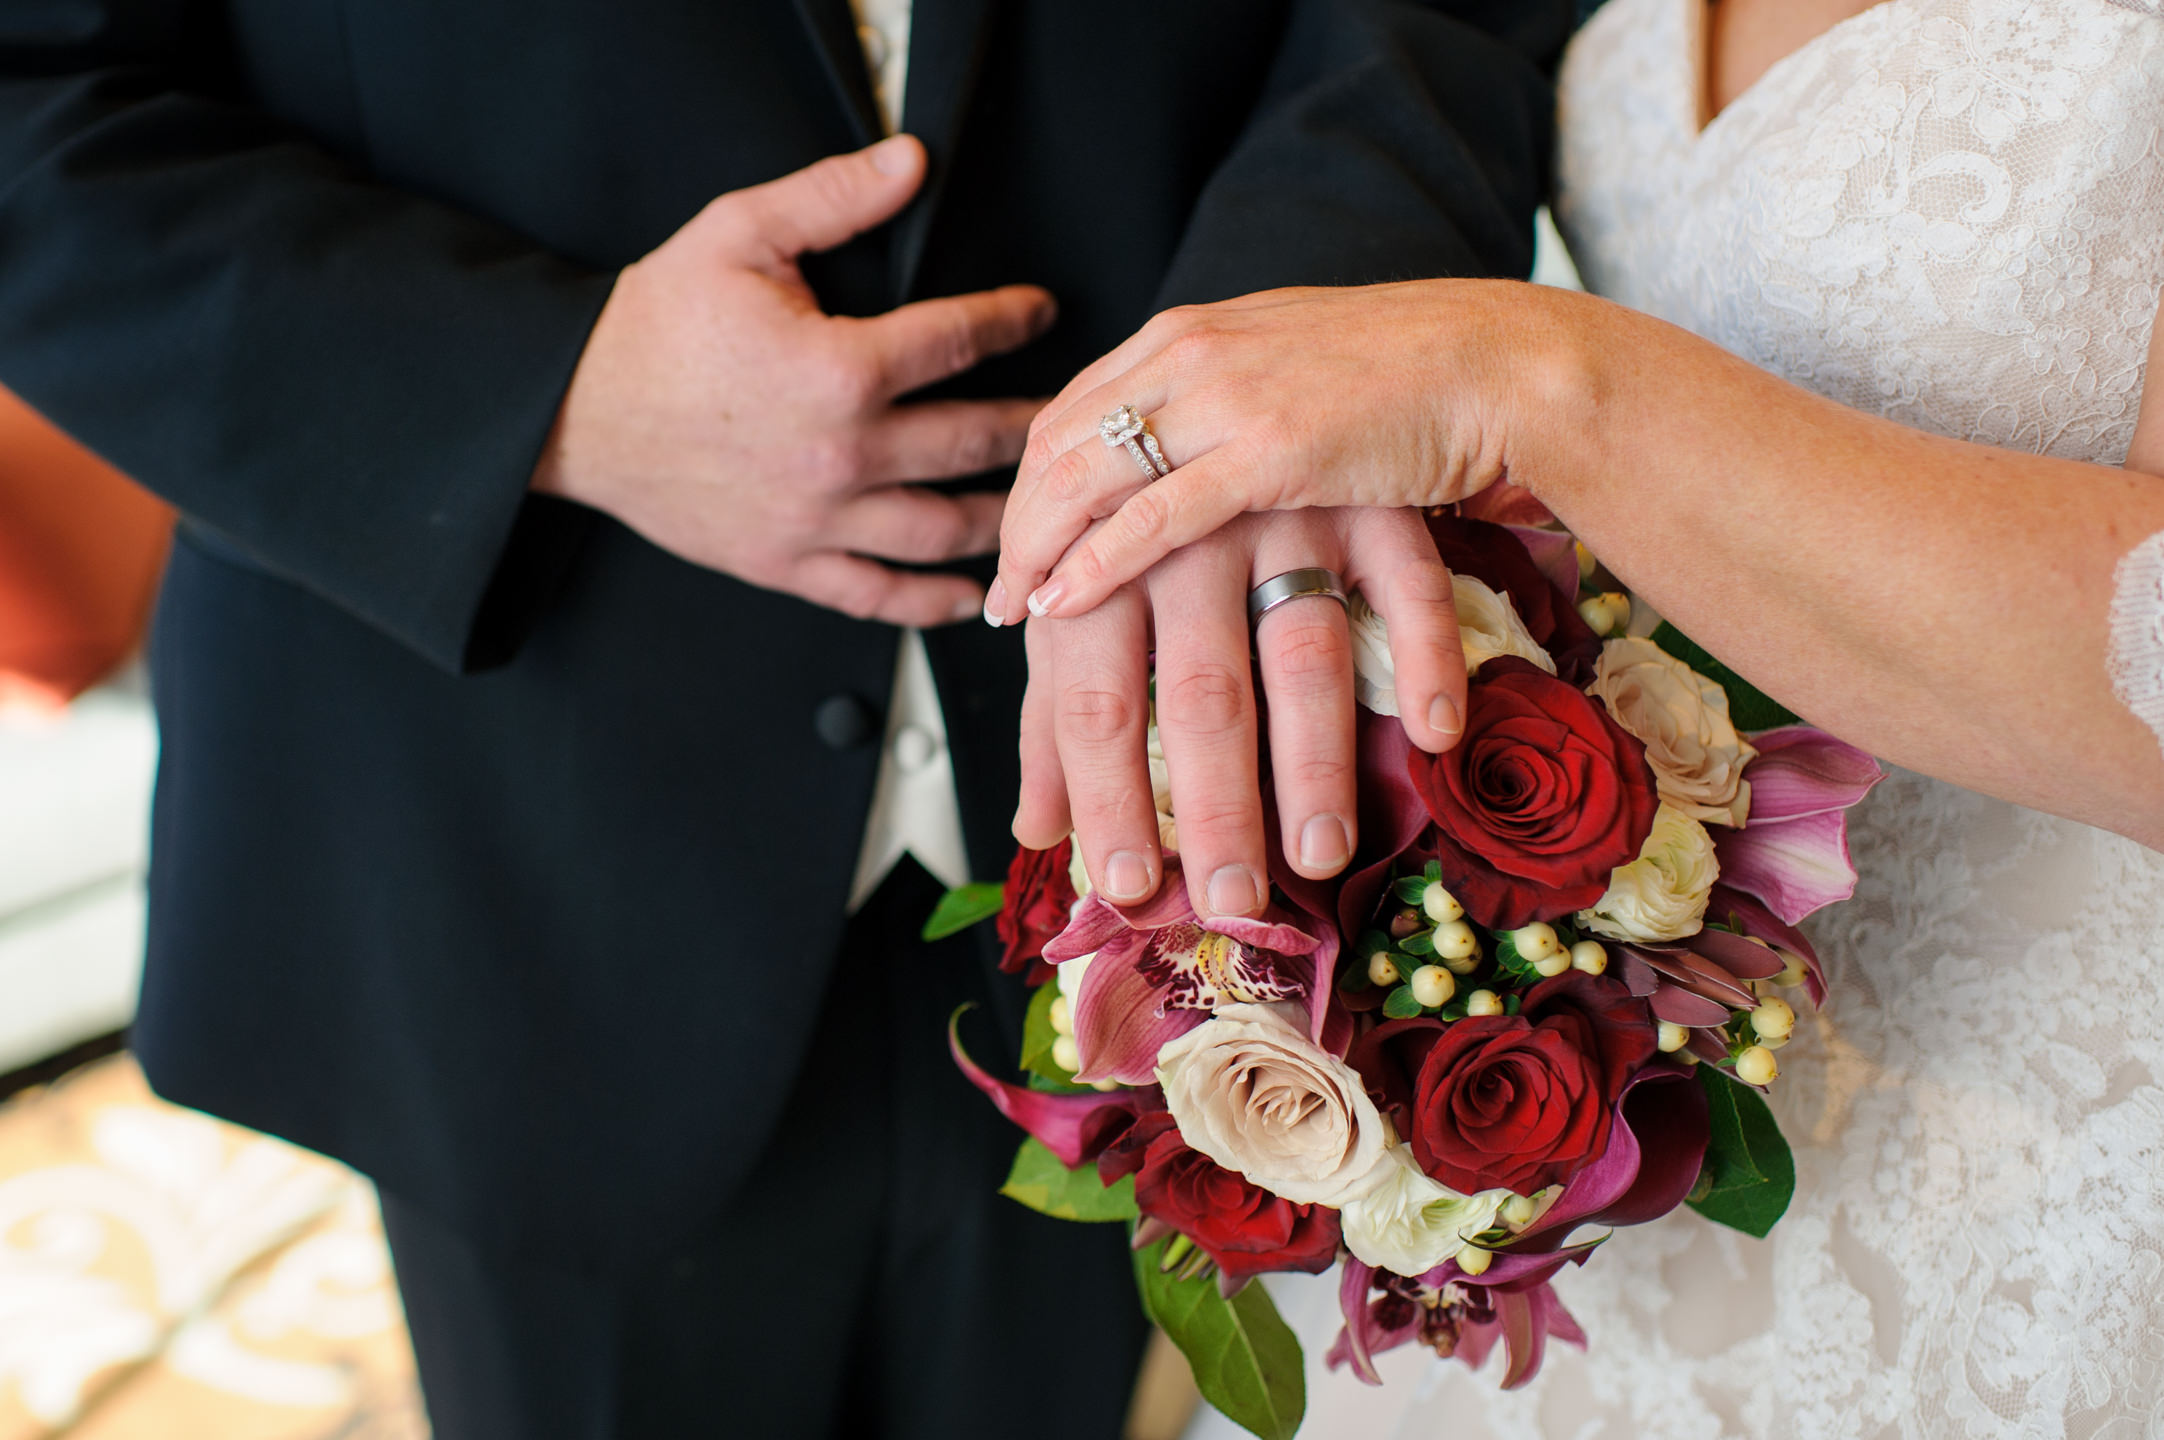 Wedding Rings and Bouquet Details